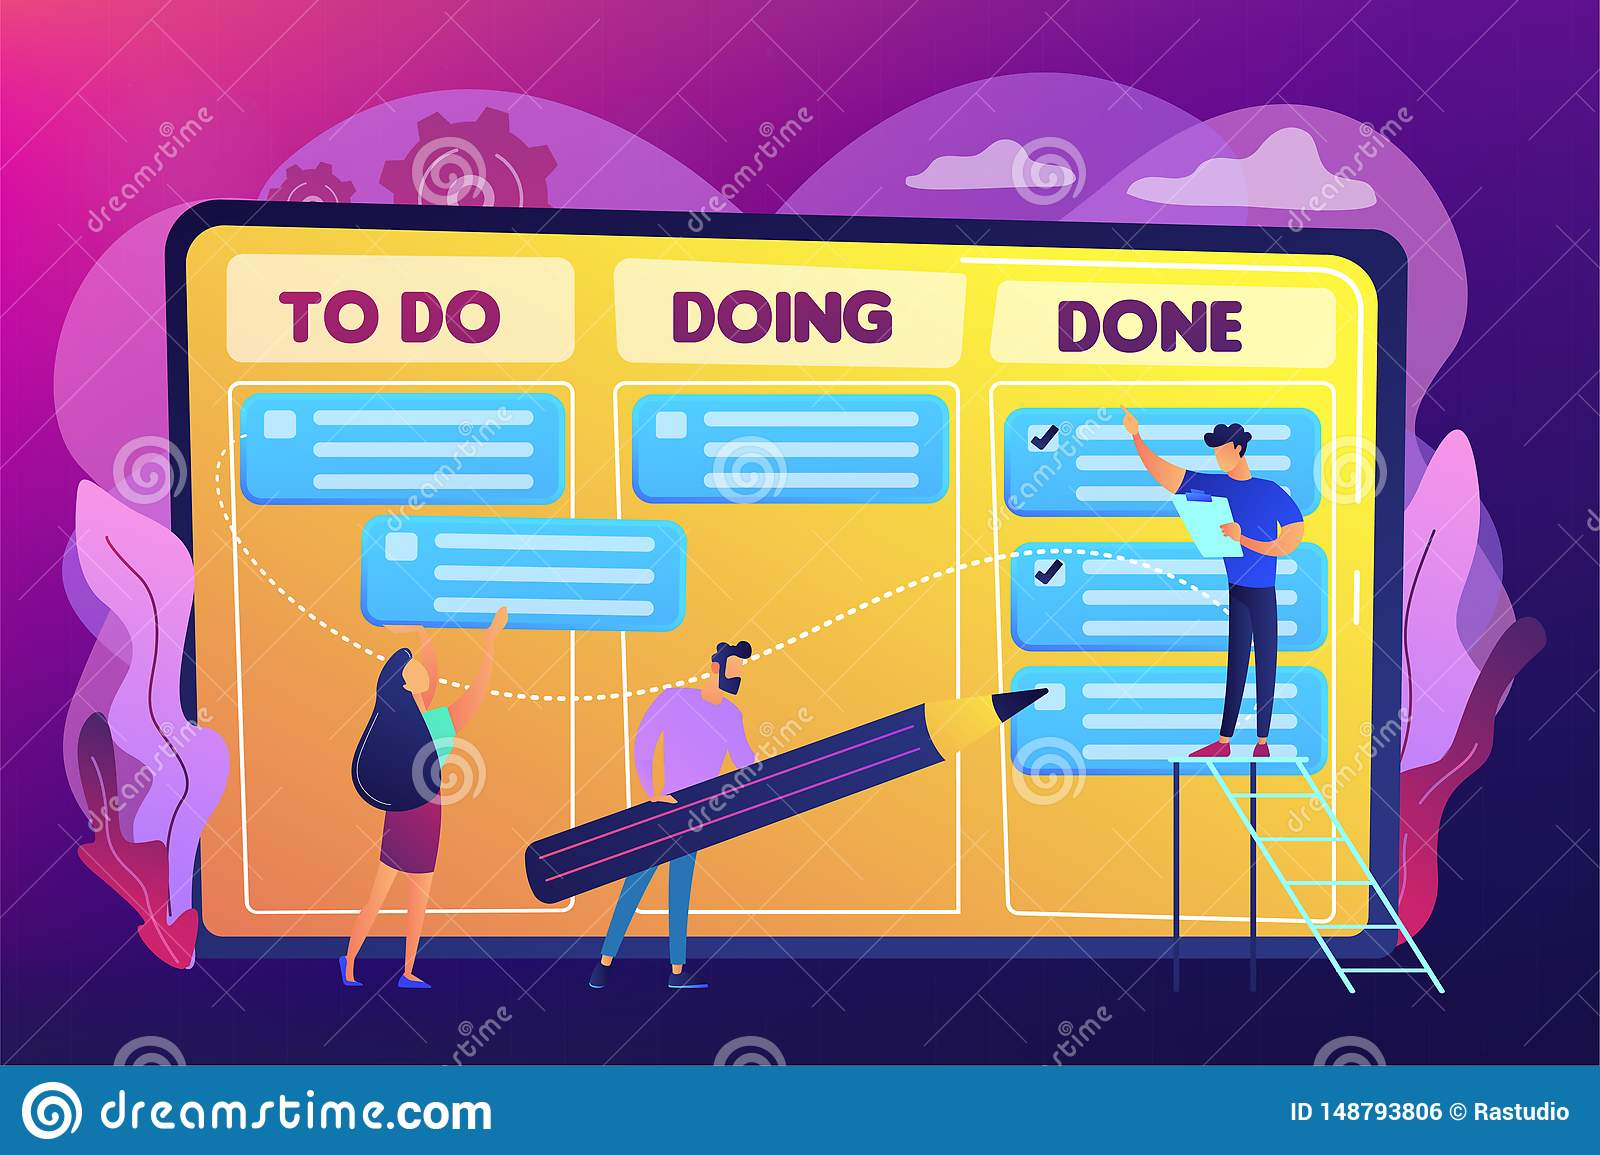 Task Management Concept Vector Illustration Stock Vector Illustration Of Infographic Drawing 148793806